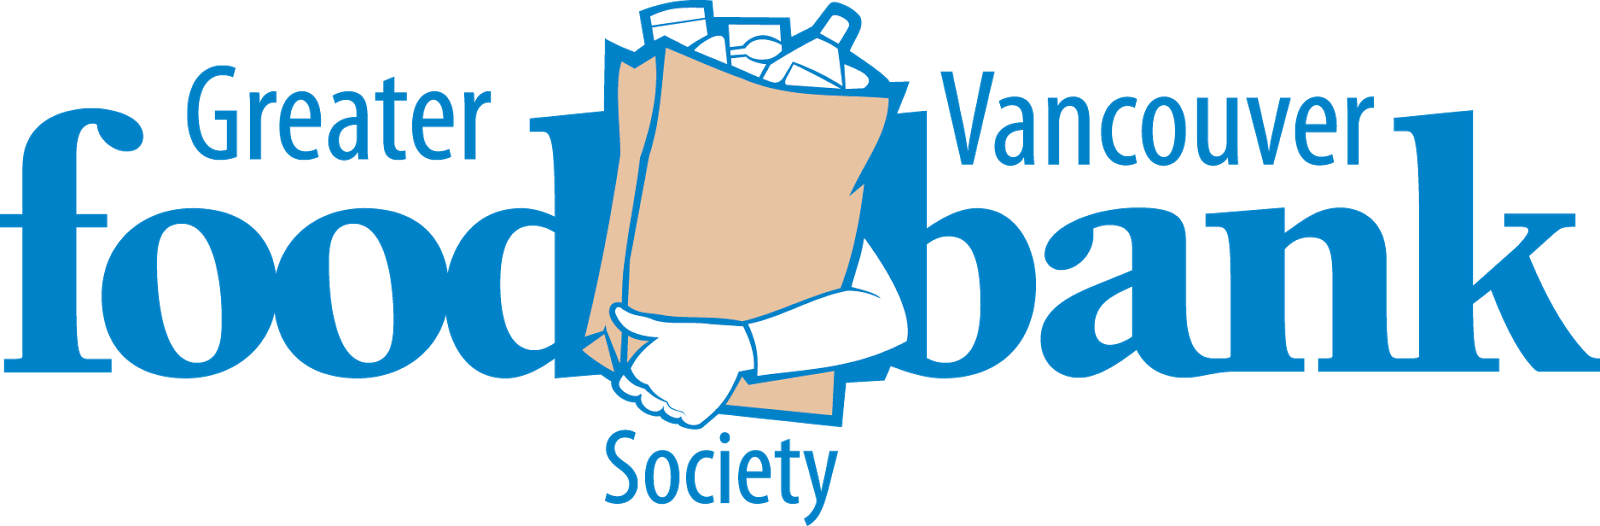 Greater-Vancouver-Food-Bank-Society-logo.png